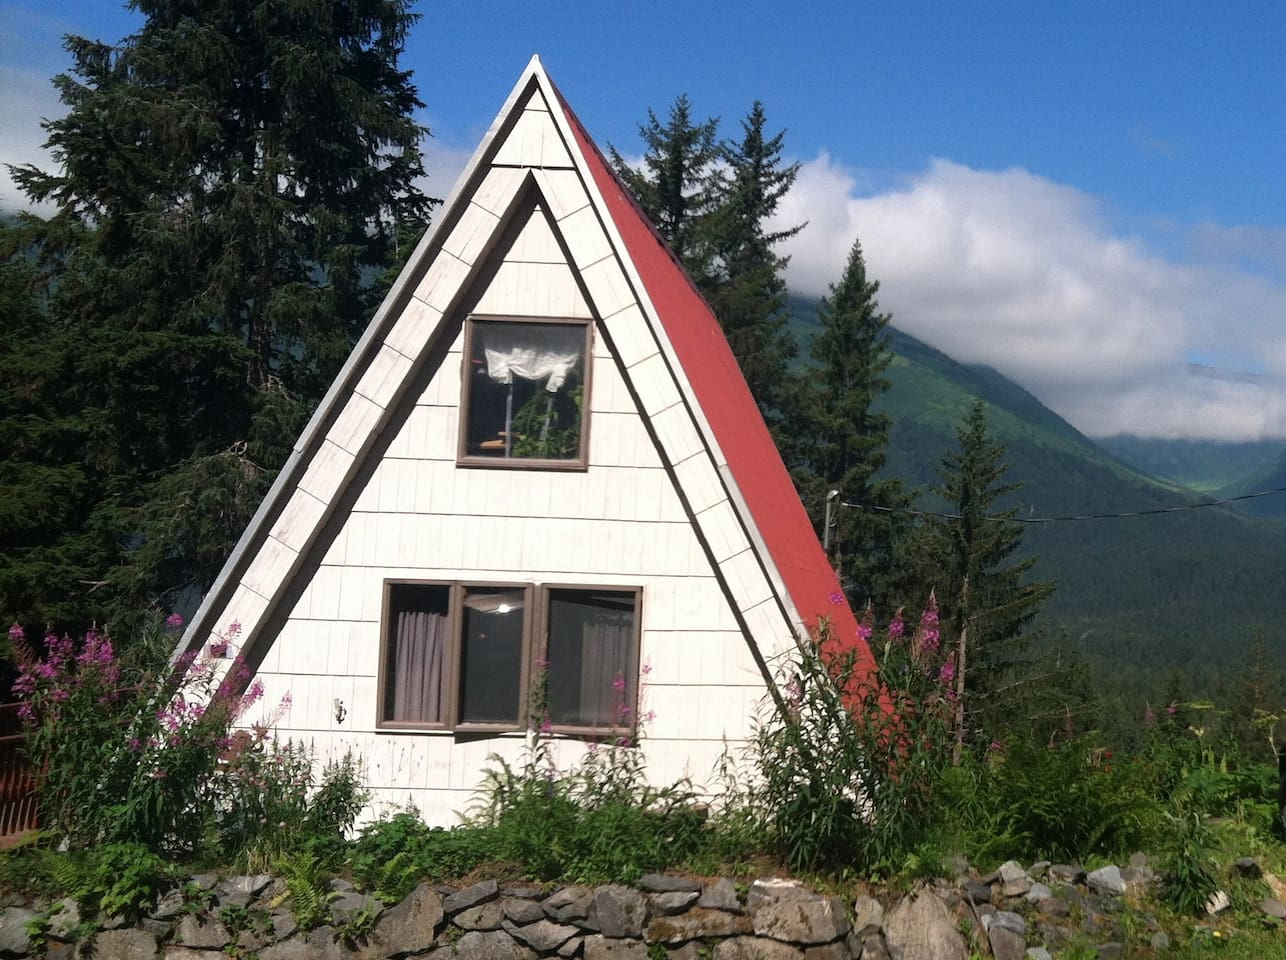 girdwood view a frame houses for rent in anchorage alaska girdwood view a frame houses for rent in anchorage alaska united states